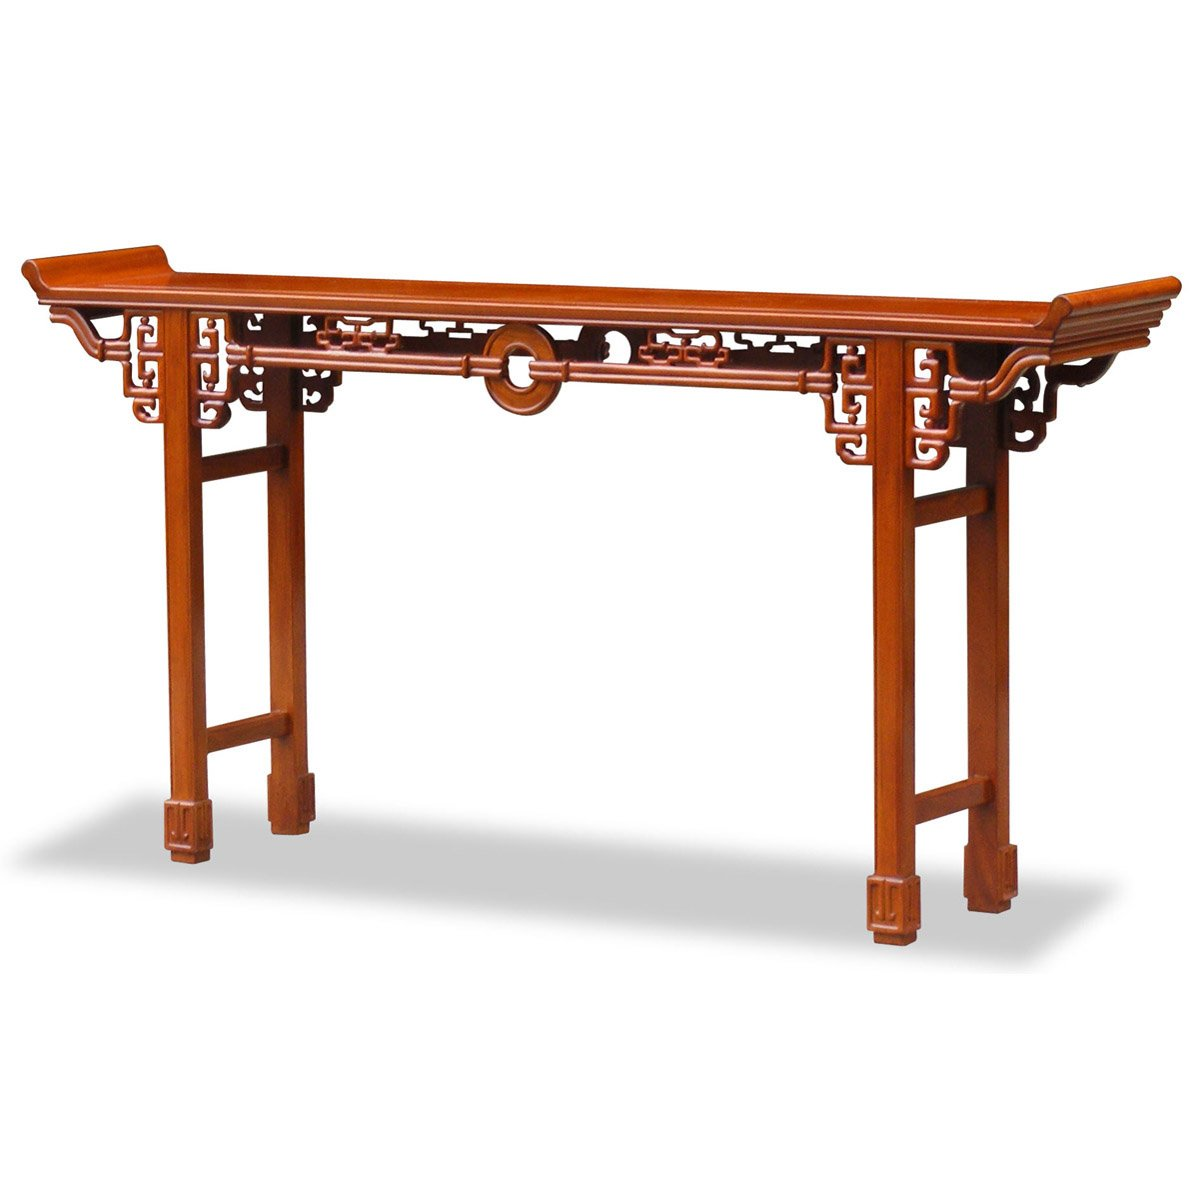 ChinaFurnitureOnline Rosewood Console Table, 72 Inches Coin Design Altar Table Natural Finish